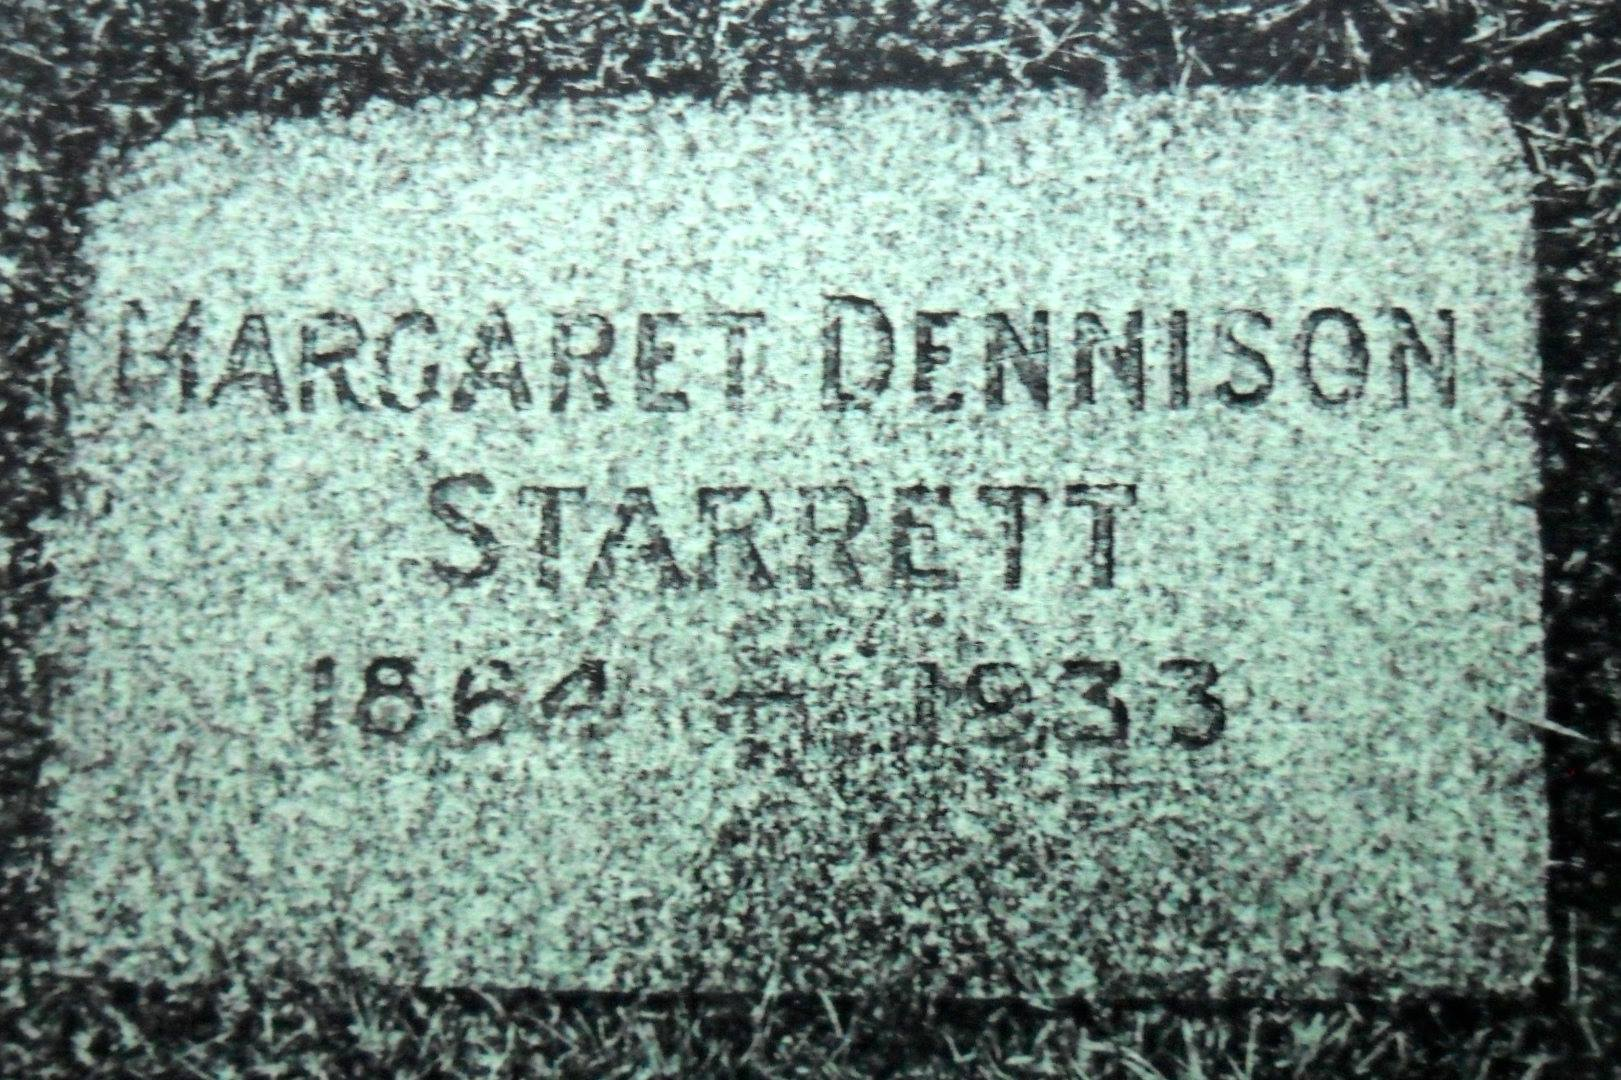 A photo of Margaret Starrett's headstone, provided by Fran Martin of Vancouver. Fran and other members of the Stormy Petrels, the Sherlock Holmes group in Vancouver, visit her grave each year, which is a kind and thoughtful thing to do.